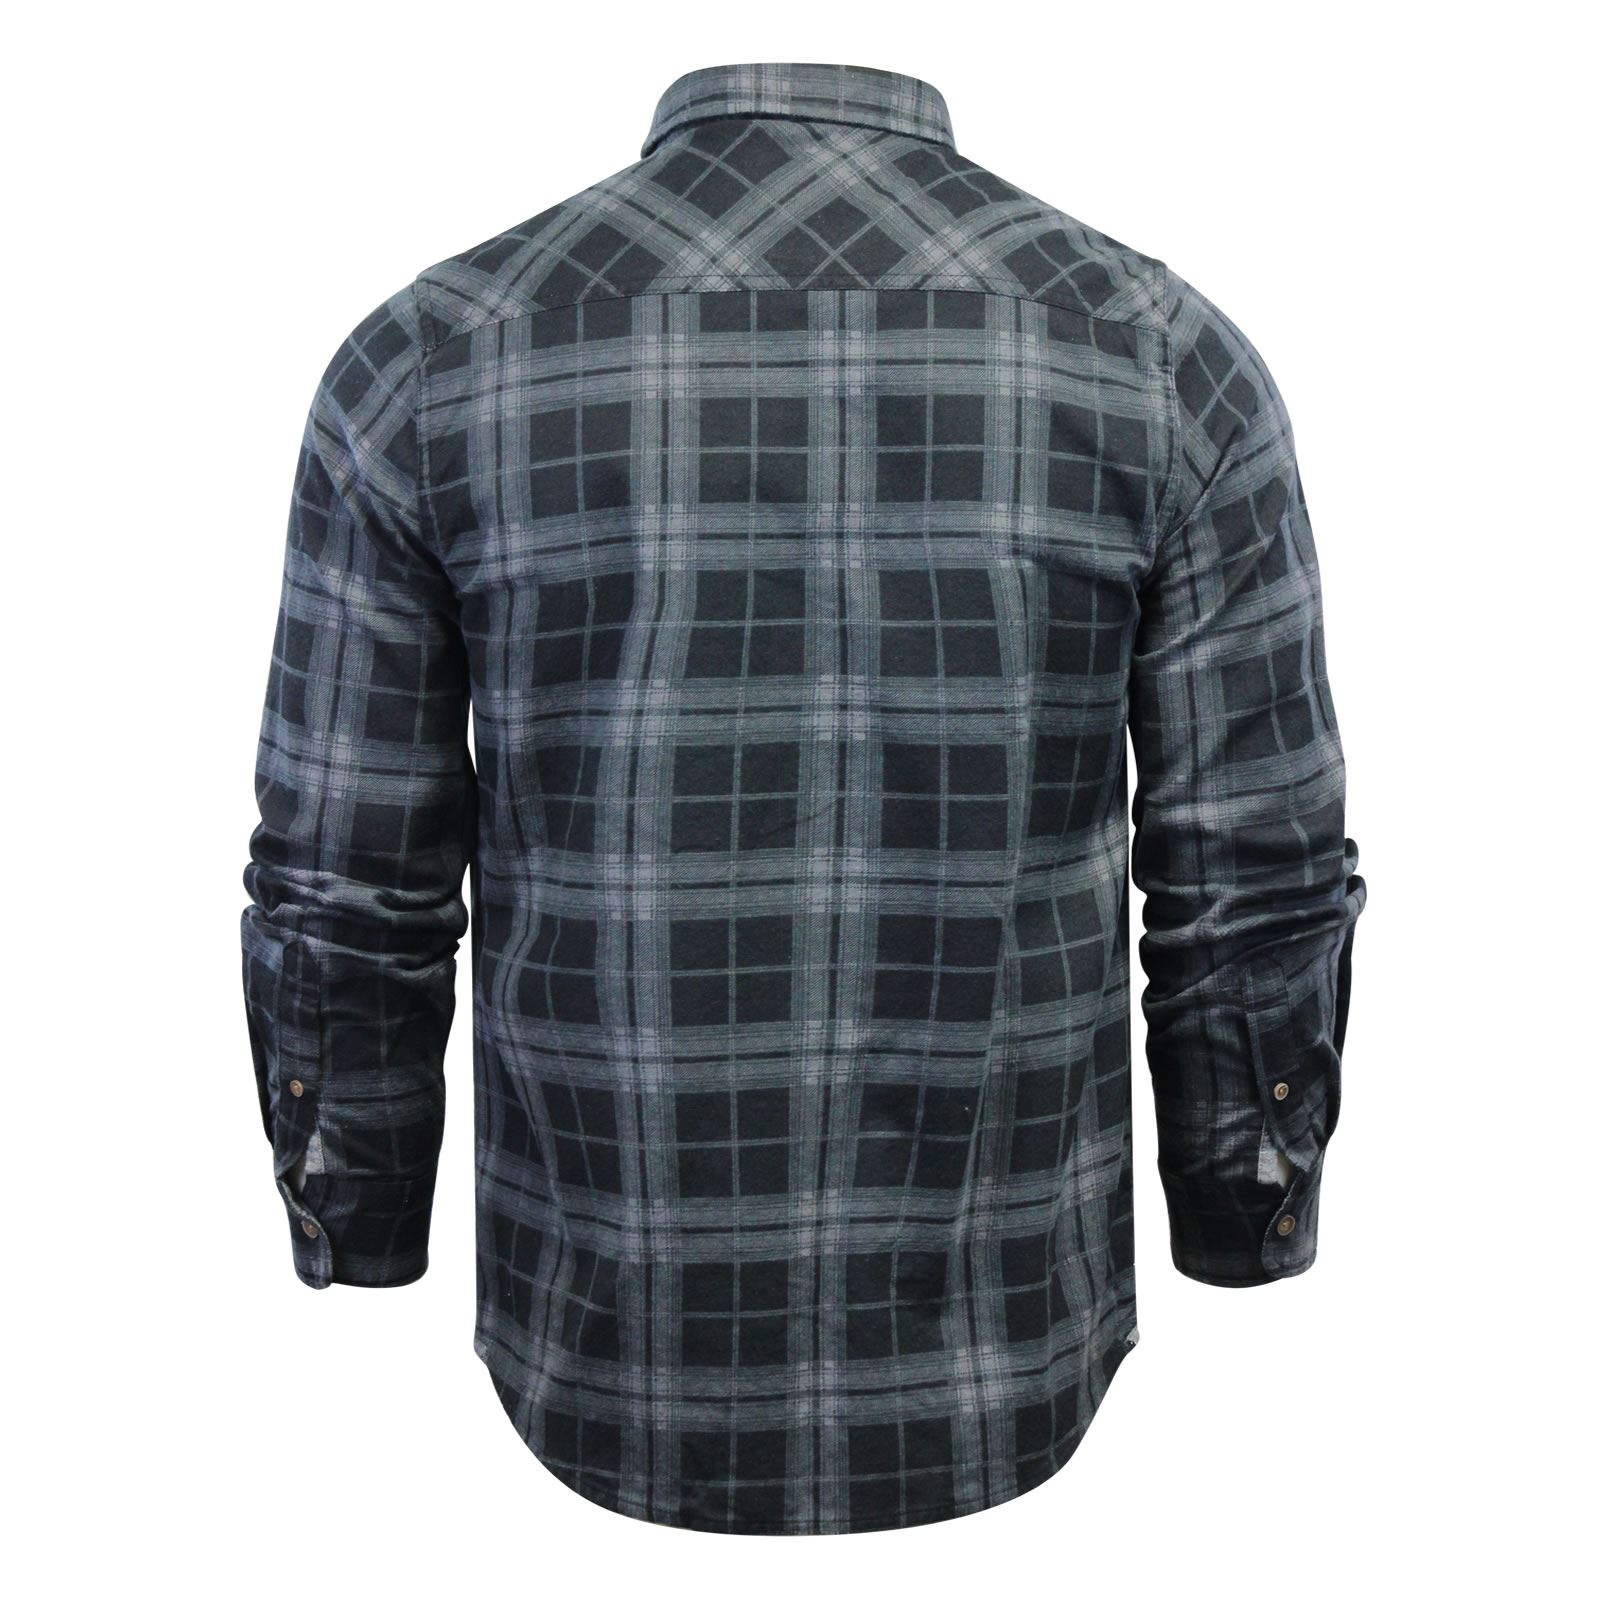 Mens-Check-Shirt-Brave-Soul-Flannel-Brushed-Cotton-Long-Sleeve-Casual-Top thumbnail 109